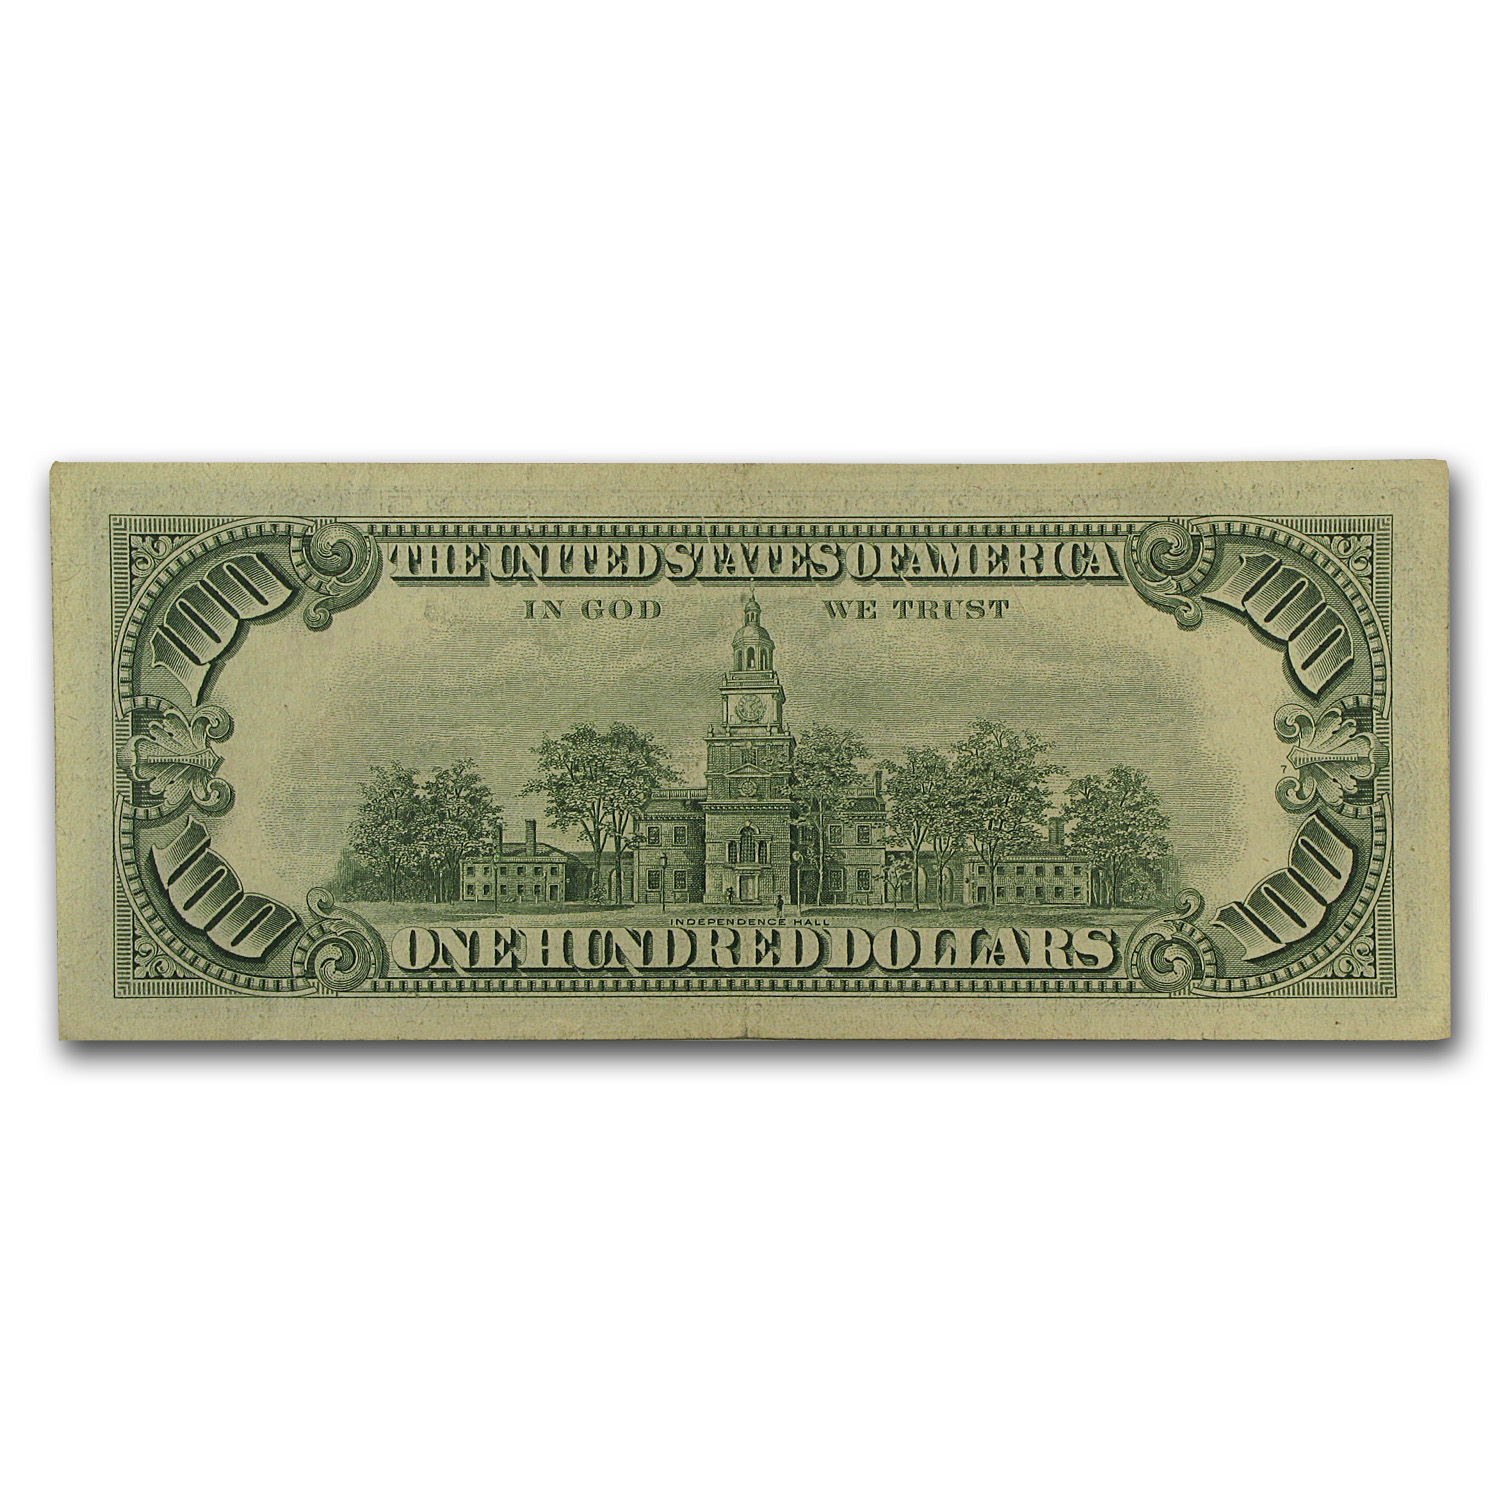 1966 $100 U. S. Note Red Seal XF